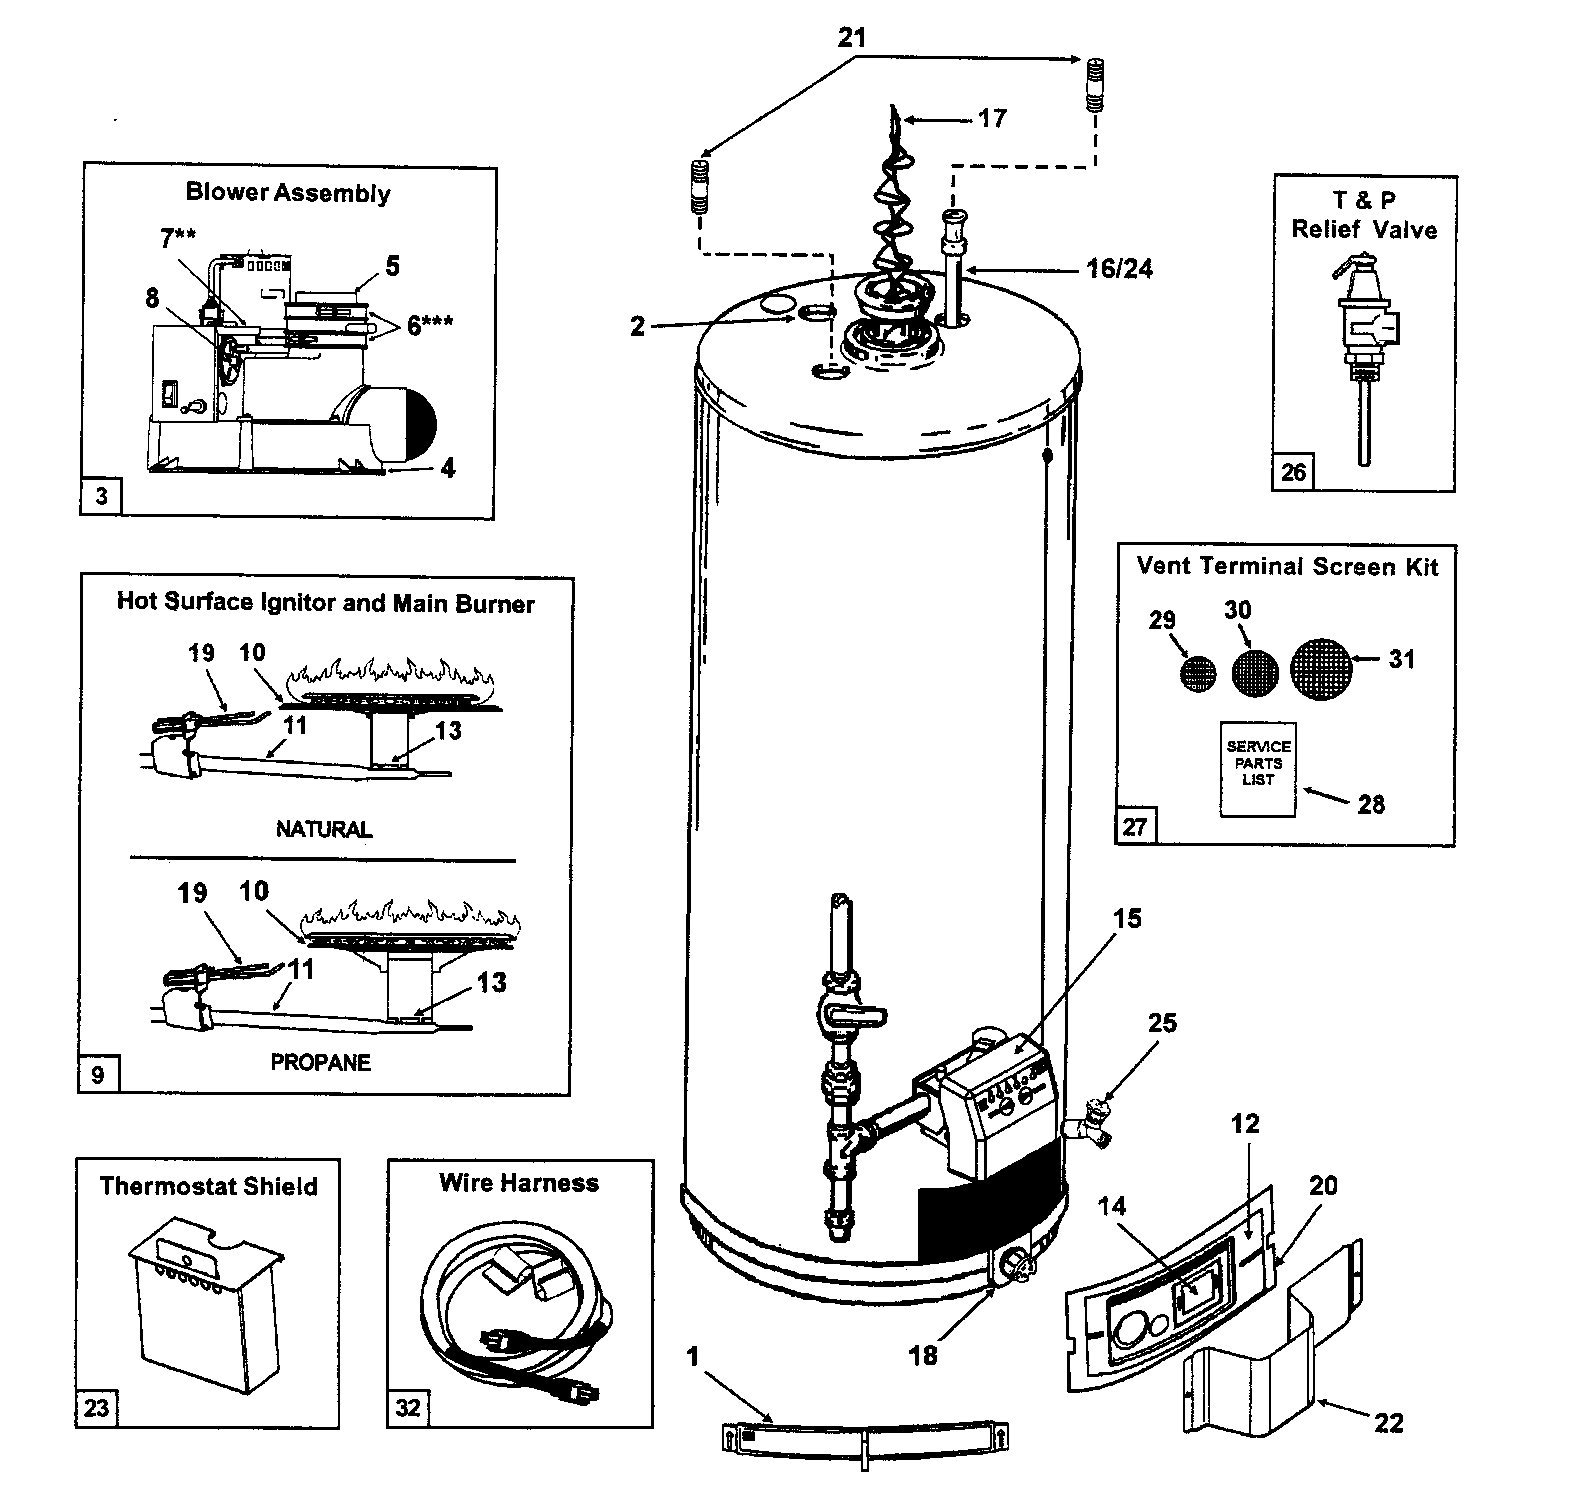 water heater diagram  u0026 parts list for model gs650yrvit5 state